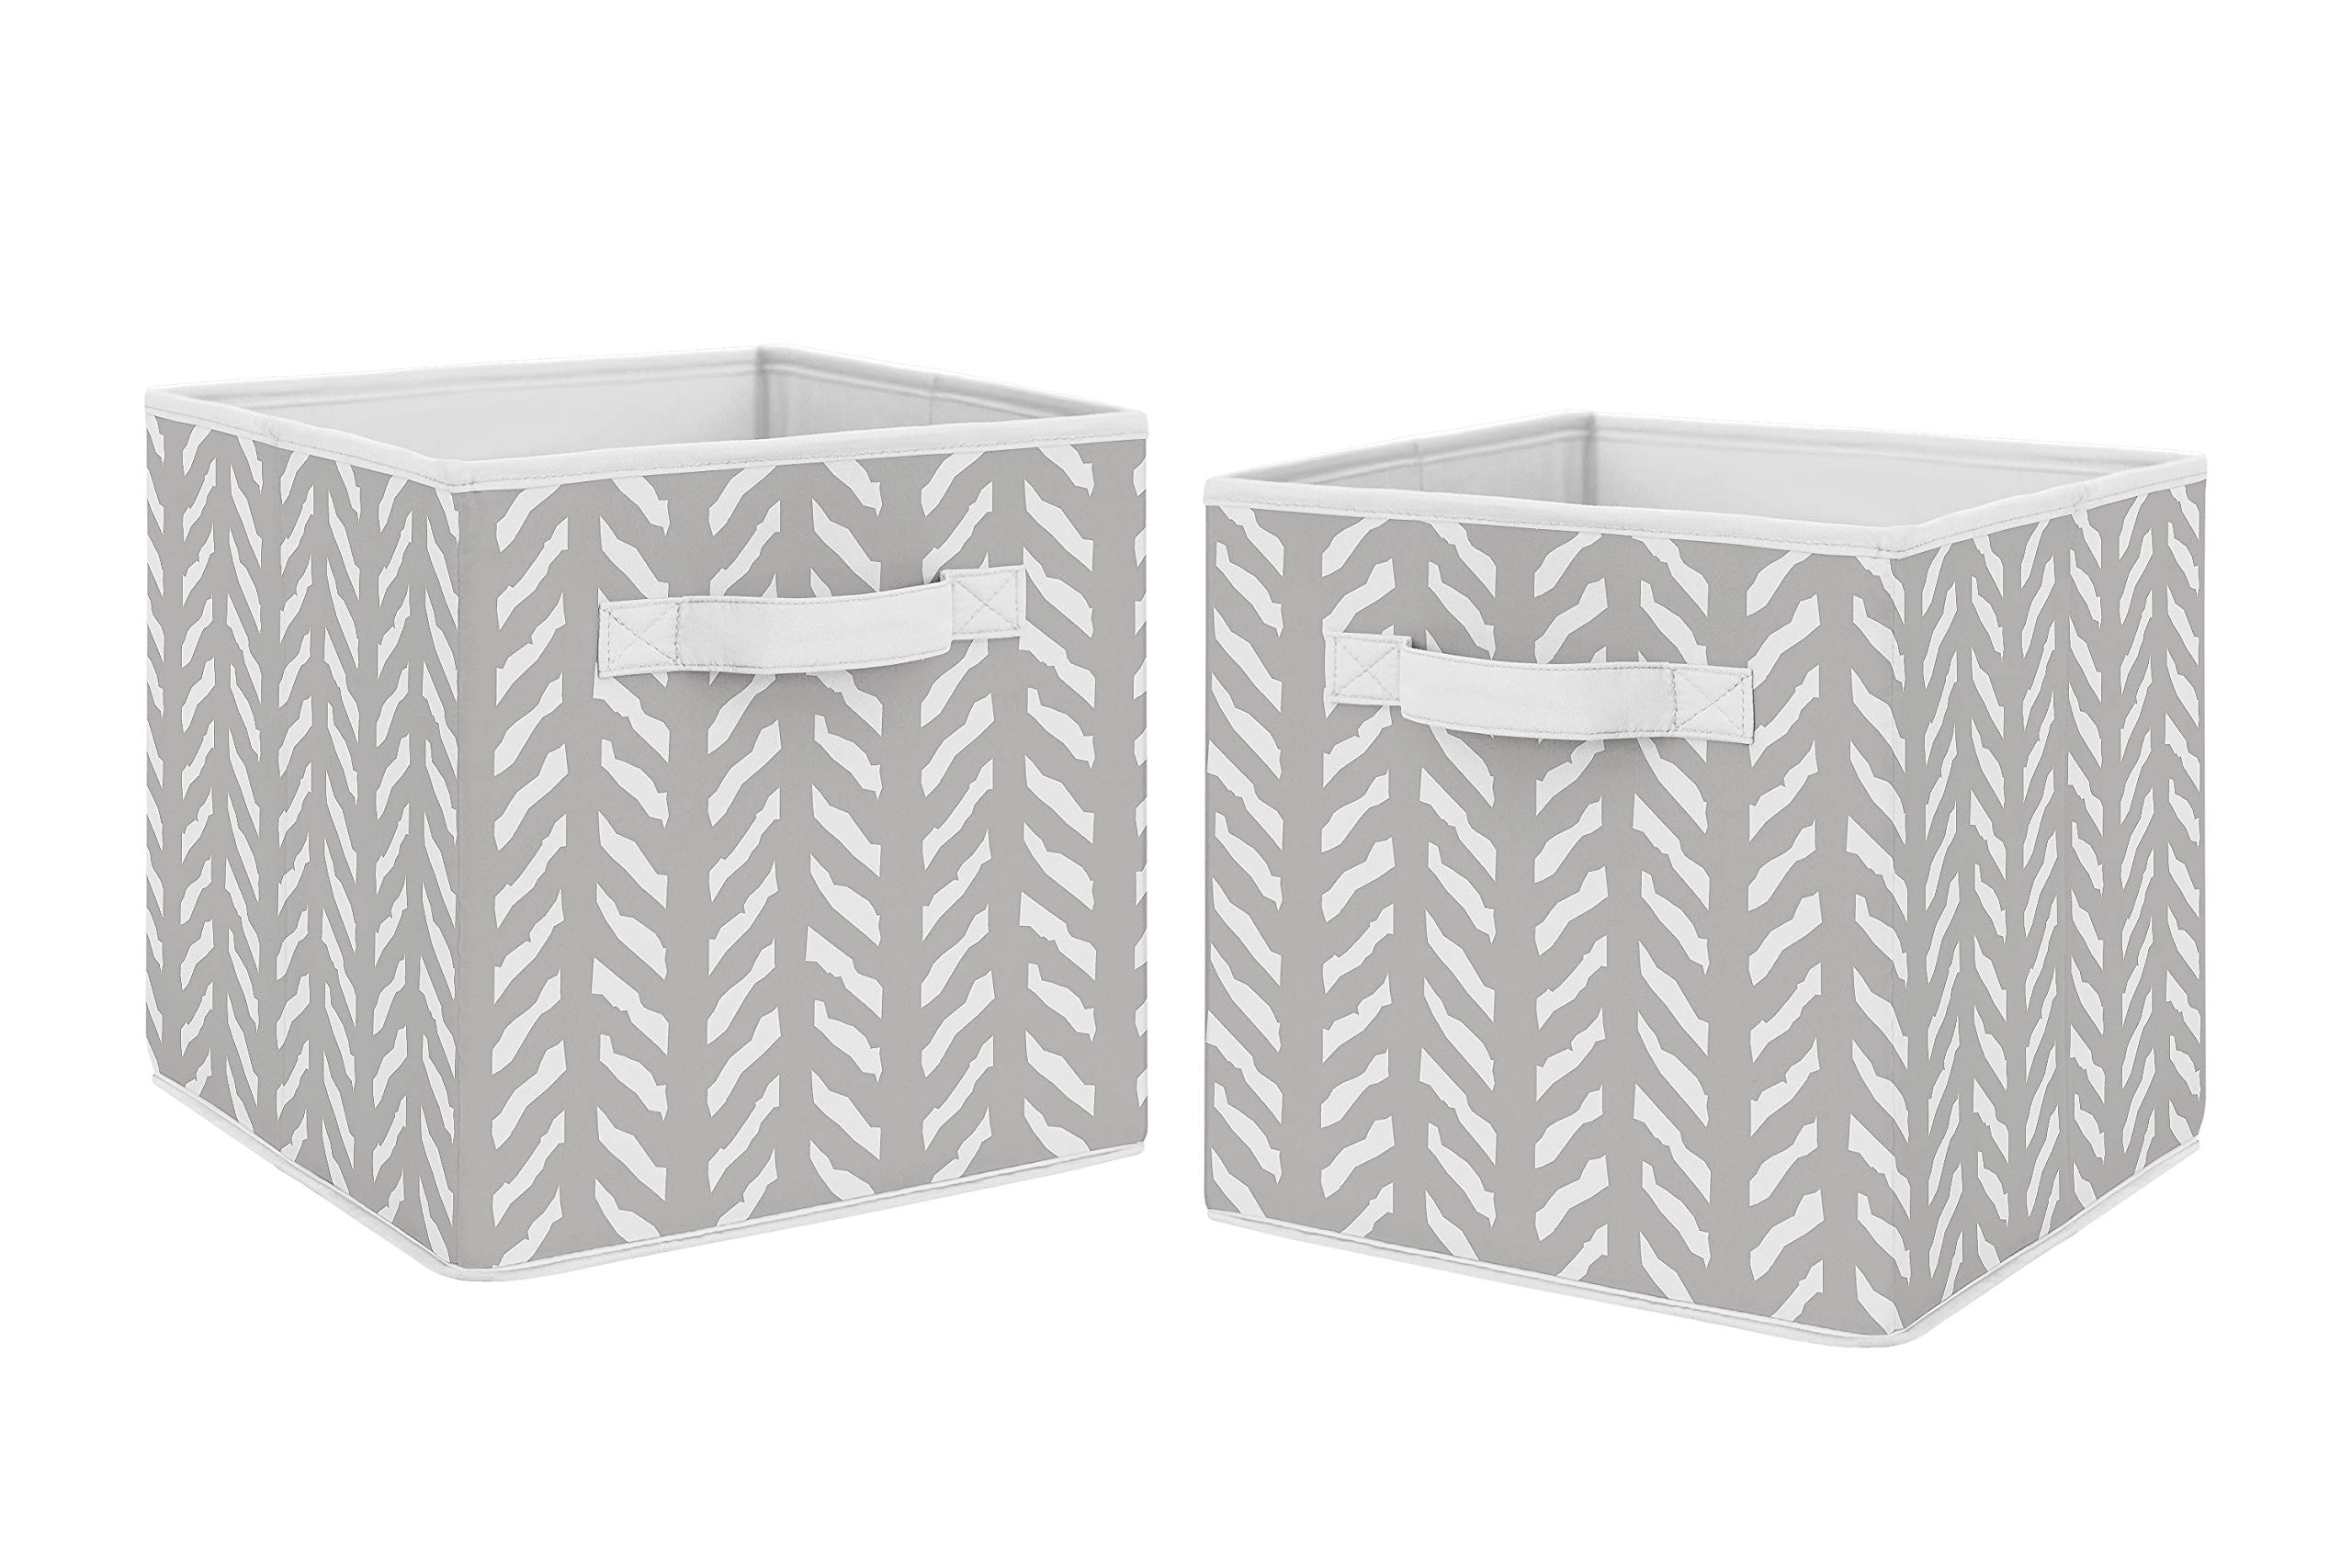 Sweet Jojo Designs Grey and White Boho Herringbone Arrow Unisex Boy or Girl Foldable Fabric Storage Cube Bins Boxes Organizer Toys Kids Baby Childrens for Gray Woodland Forest Friends Collection